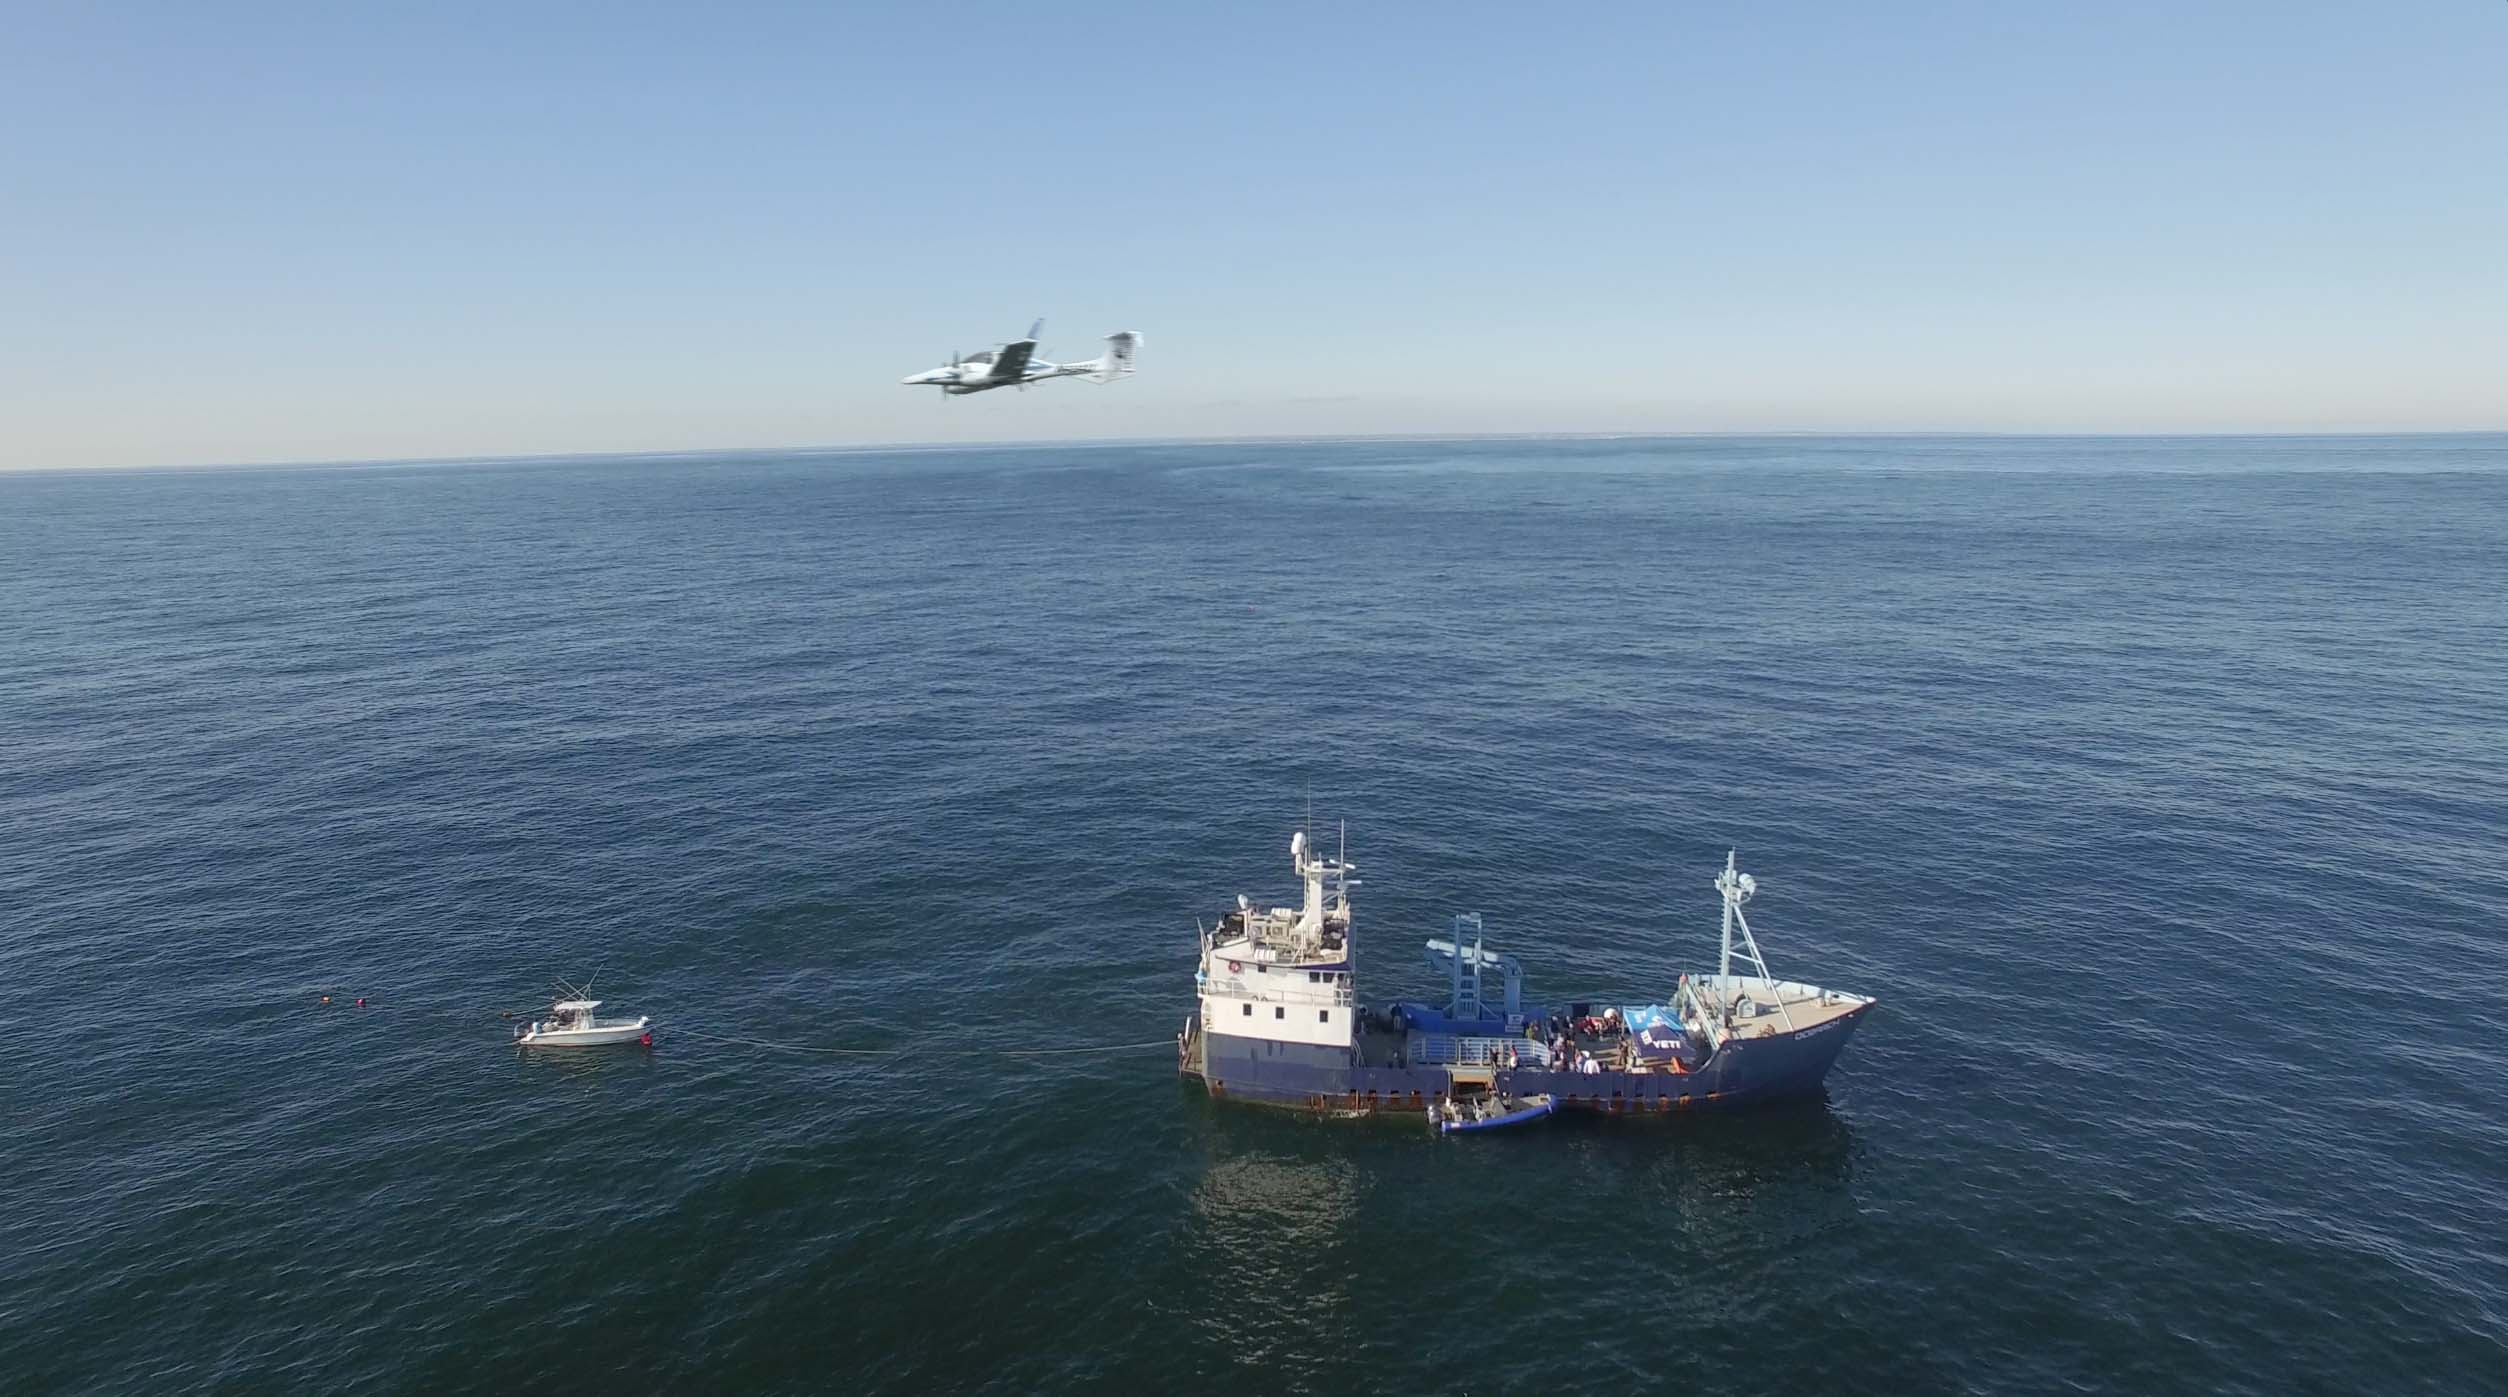 centaur_ocearch-expedition - sUAS News - The Business of Drones